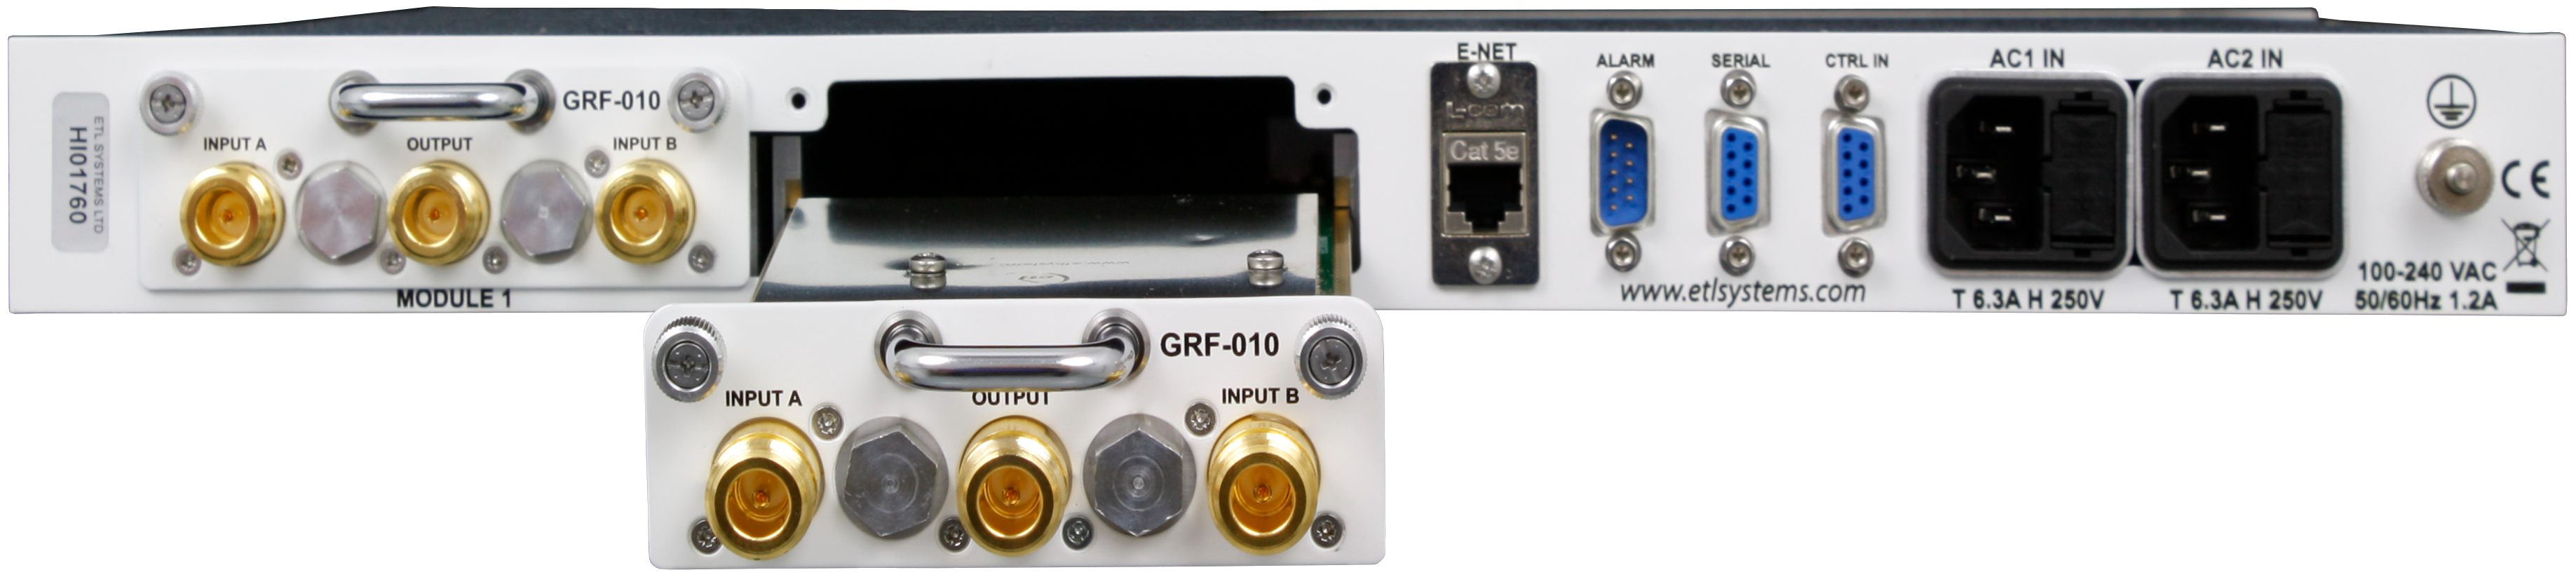 Griffin Redundancy Switch ASI Module 2x1